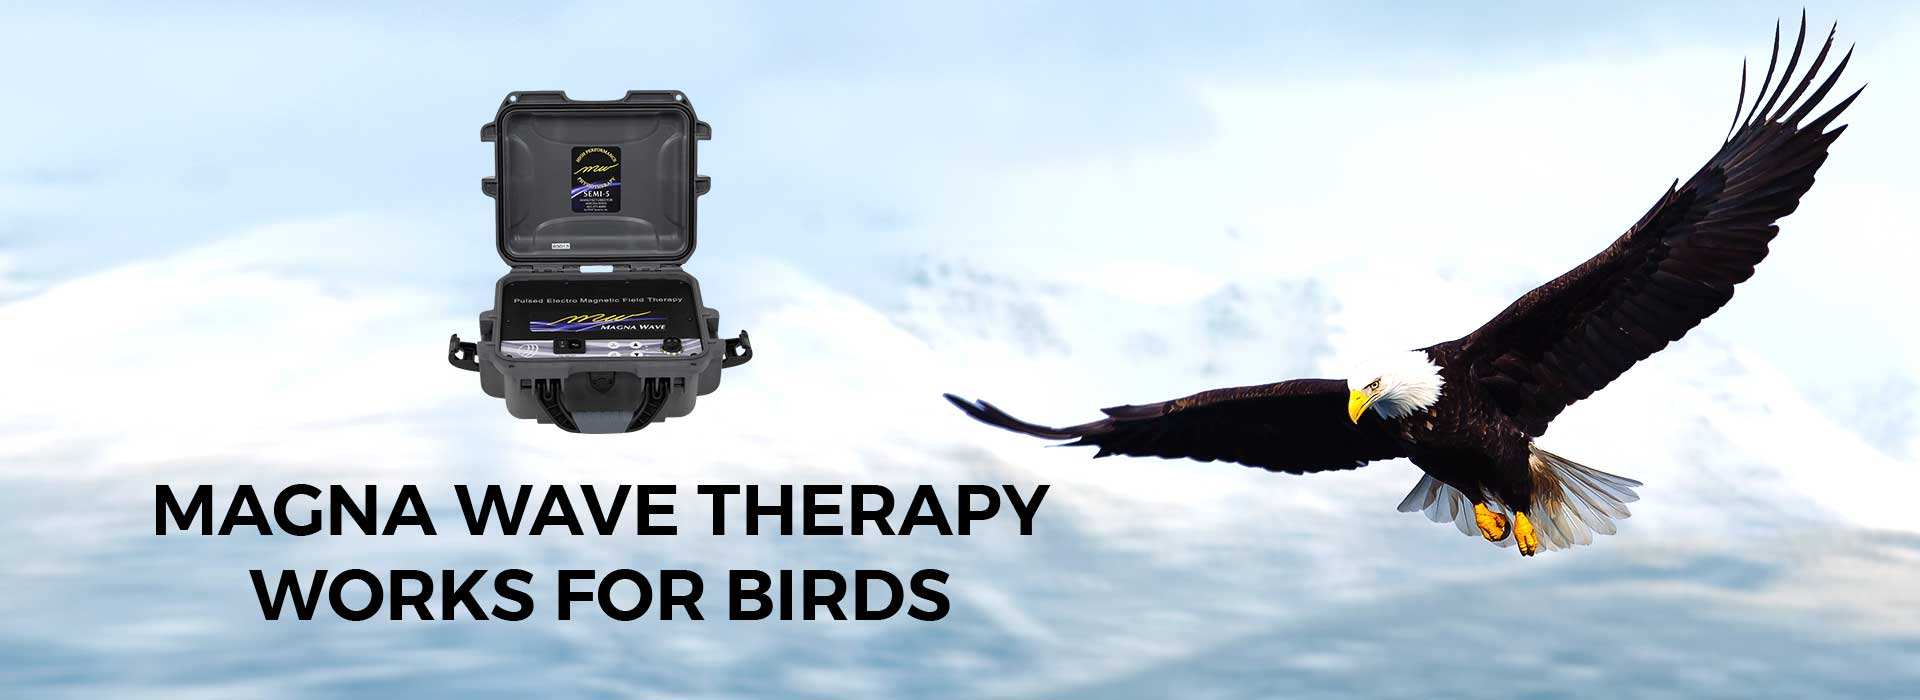 Magna Wave Therapy Works for Birds